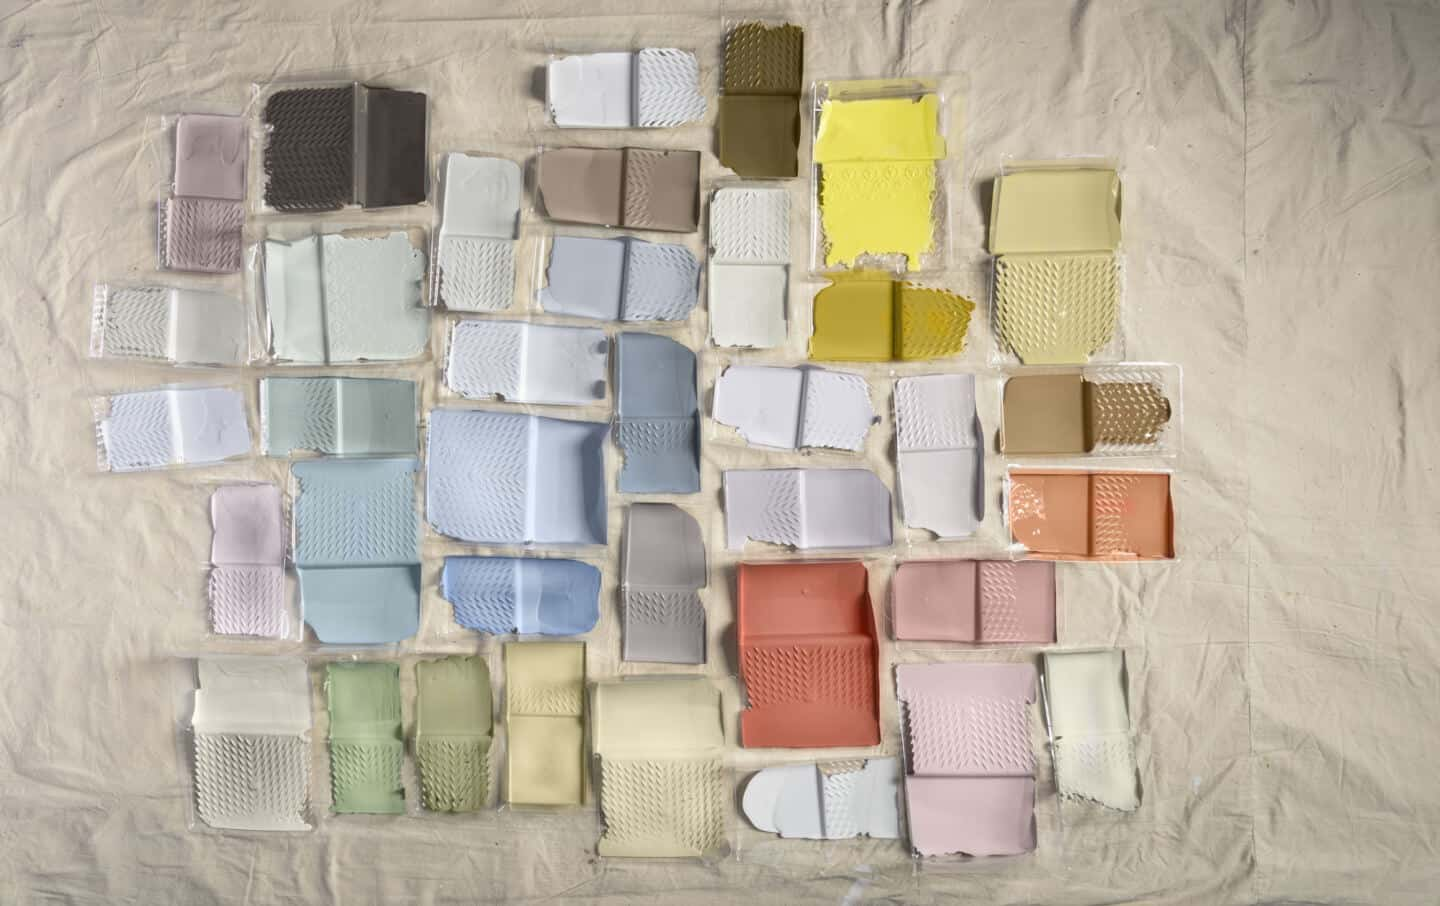 Dulux Colour of the Year 2022 Bright Skies colour palette